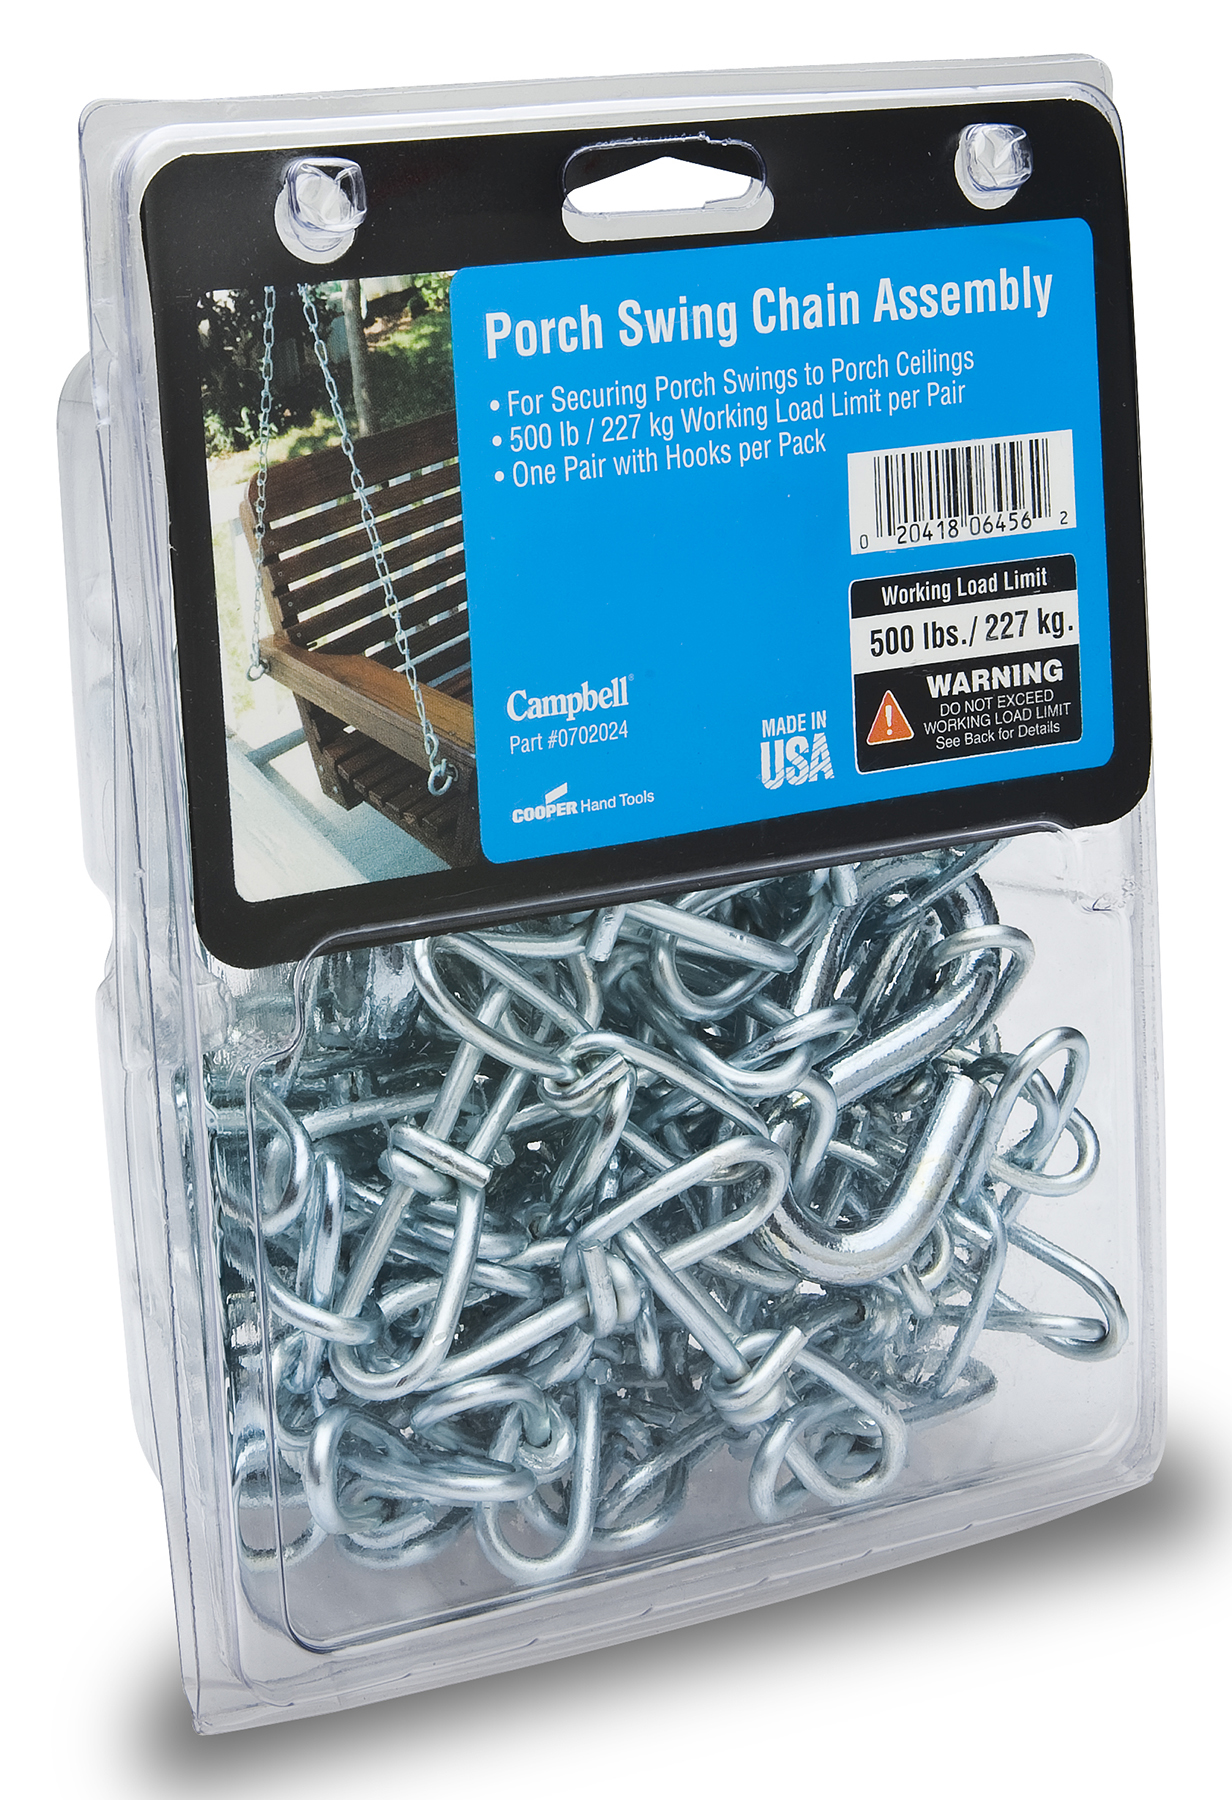 Porch Swing Chain Embly 2 X 7 1